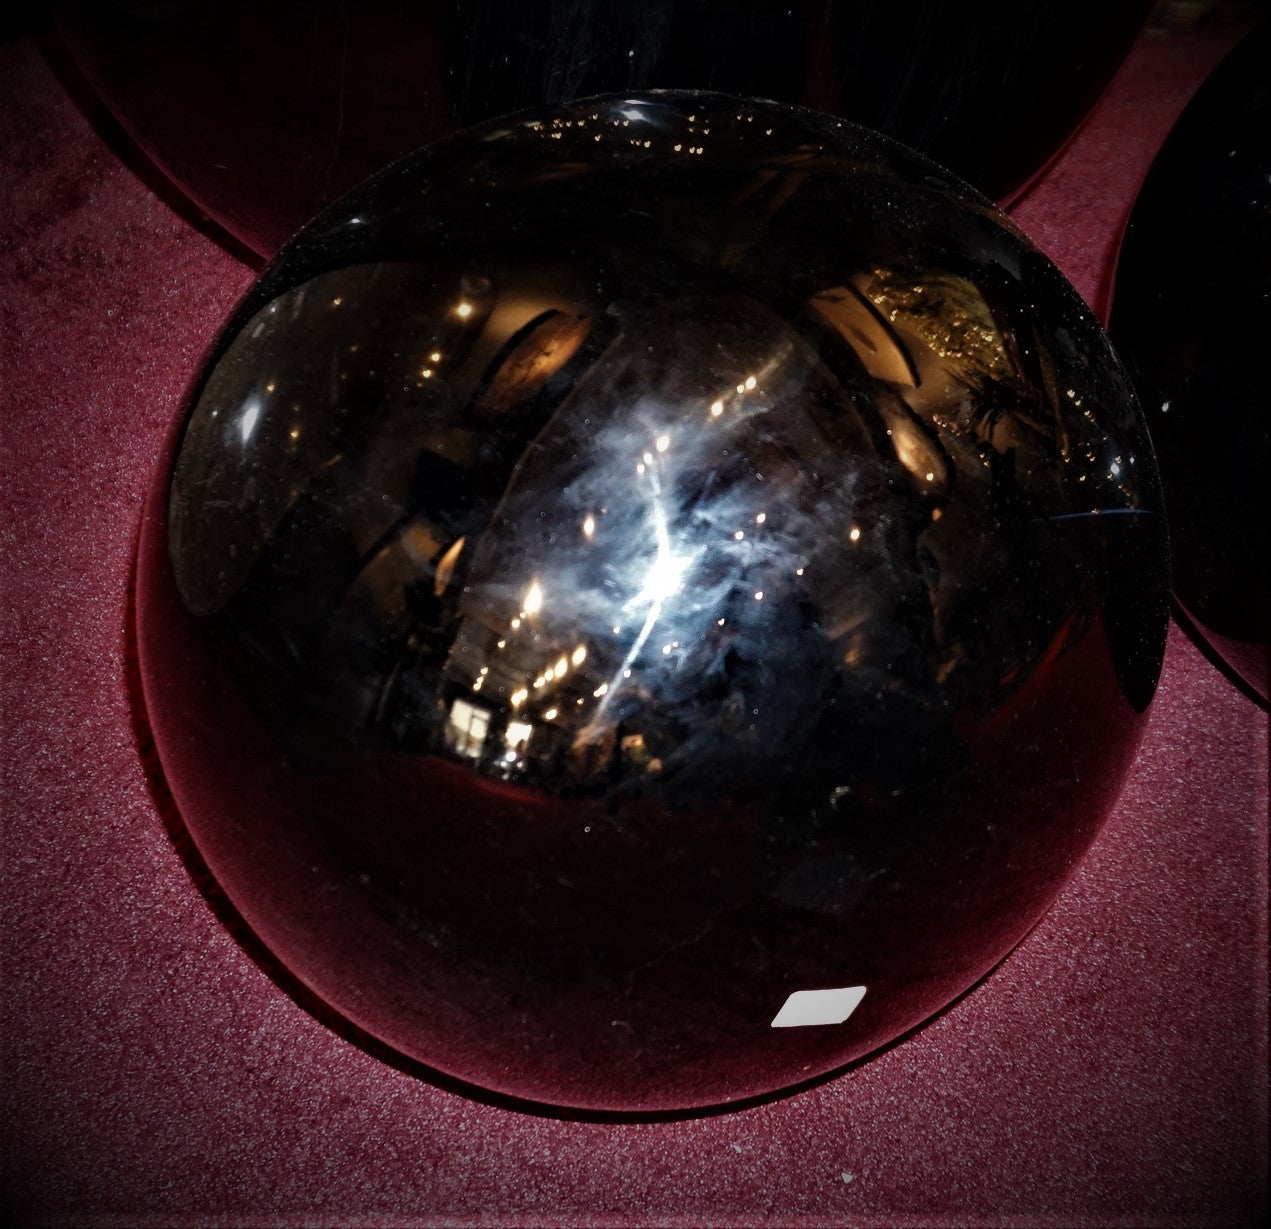 14 Inch Obsidian Sphere Home Decor